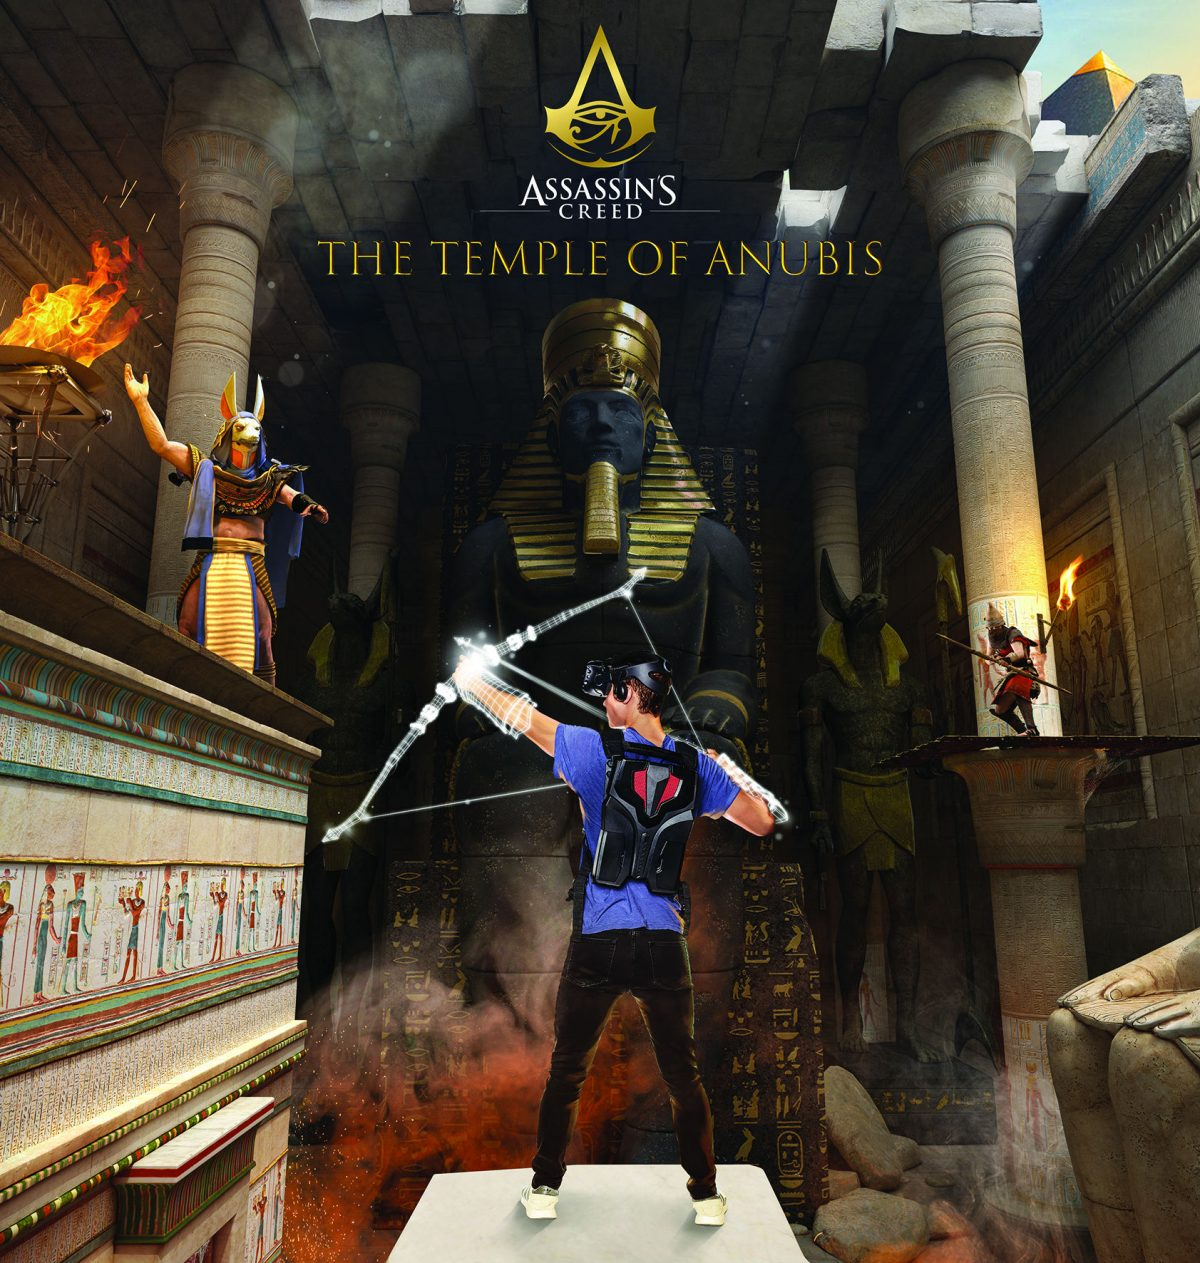 Assassin's-Creed-The-Temple-of-Anubis-Ubisoft